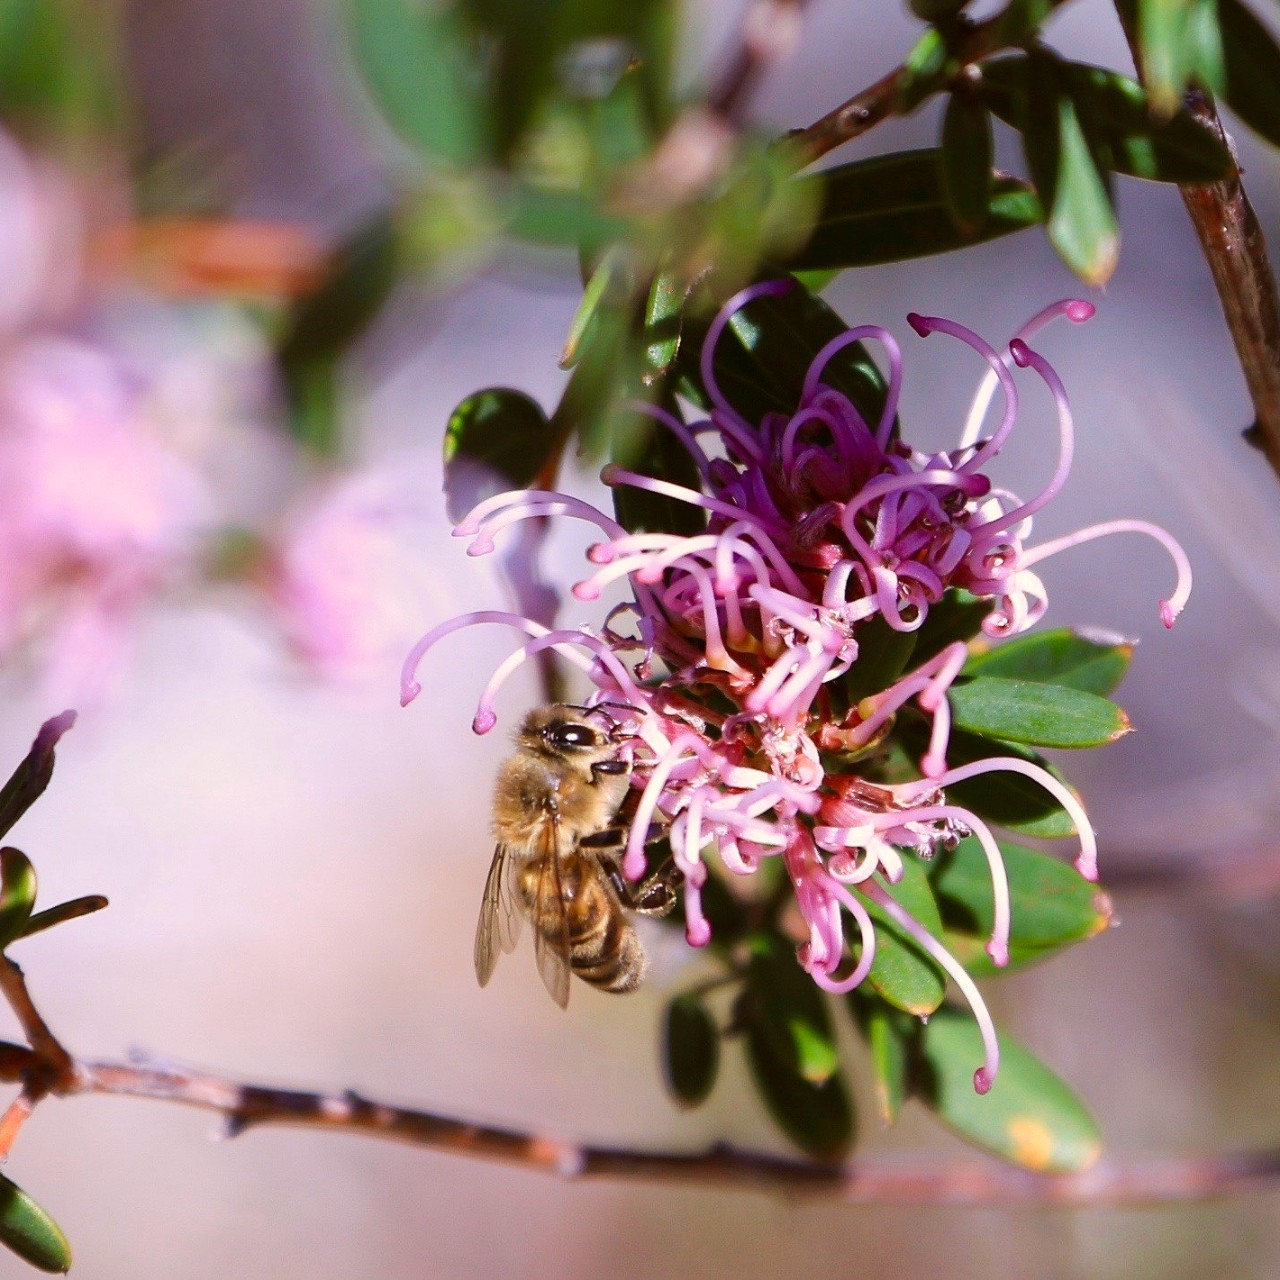 a honey bee on a pink spider flower